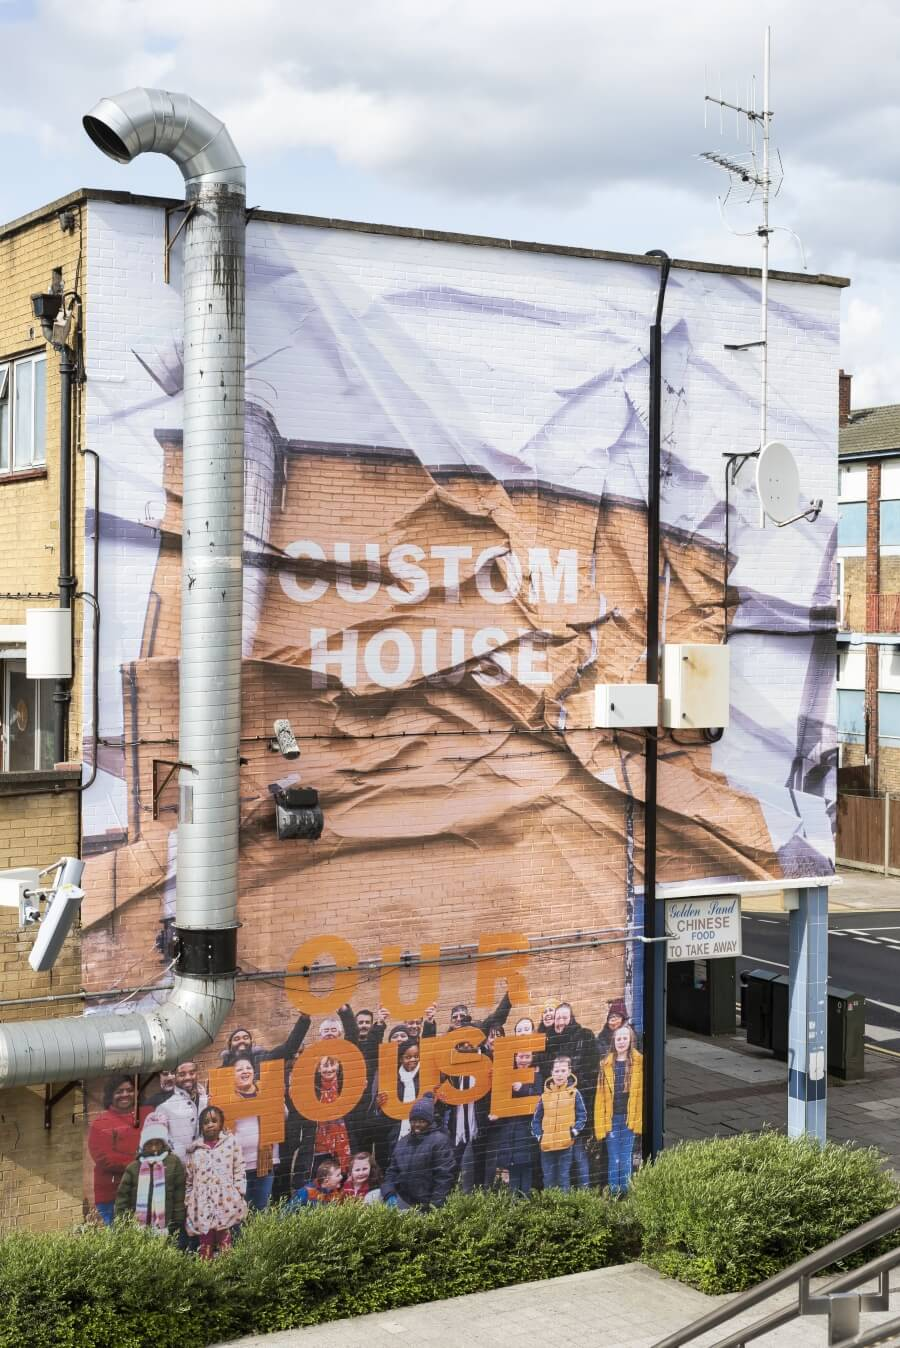 Custom House Is Our House, 2019